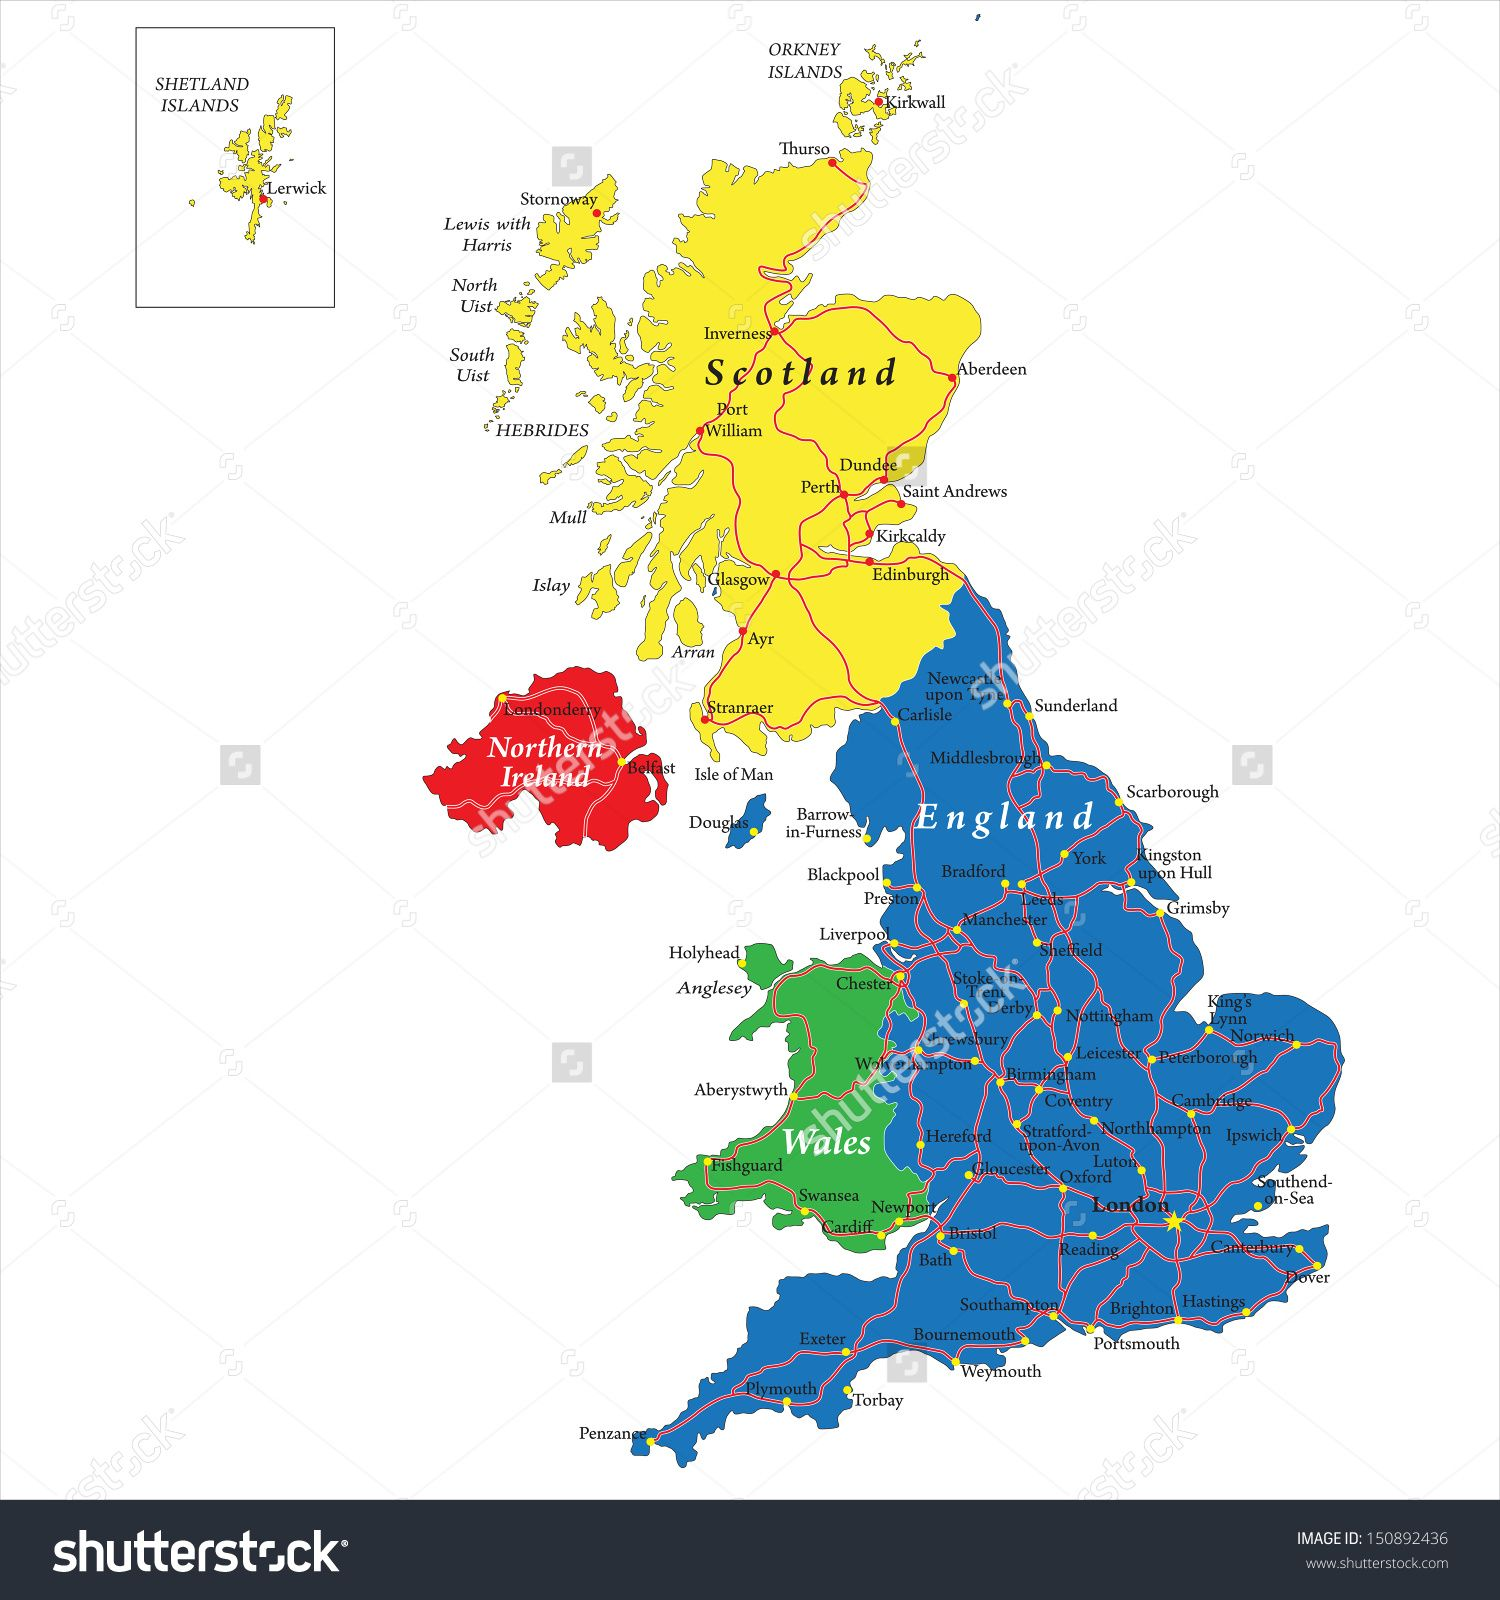 ireland political map england stock updated